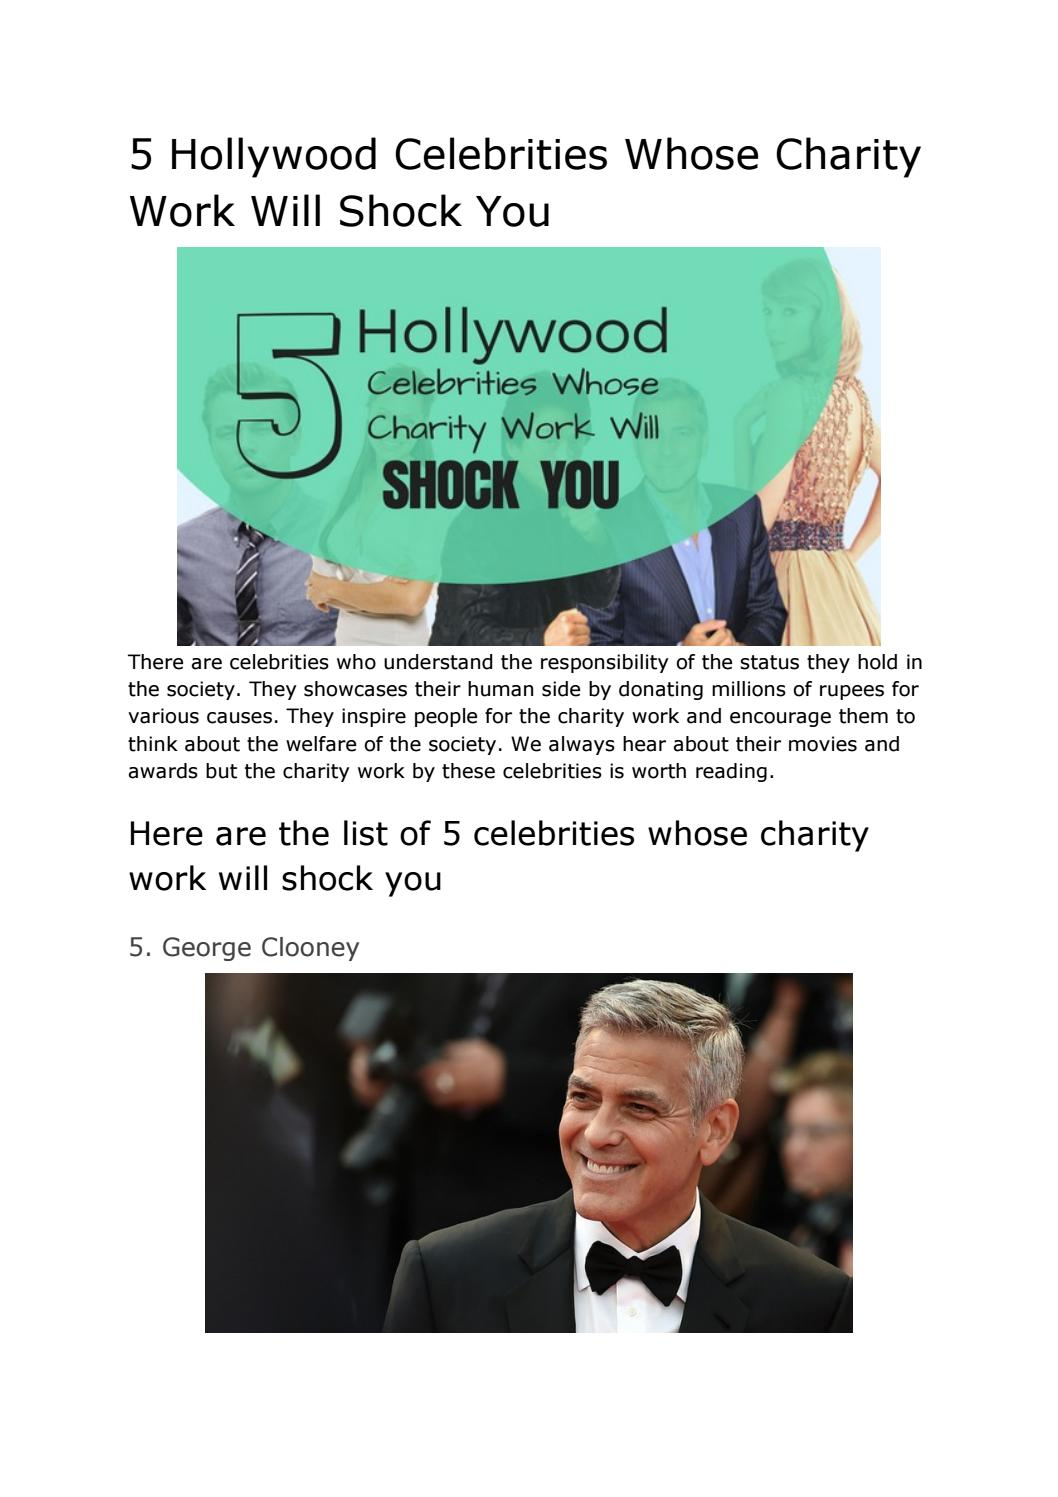 5 hollywood celebrities whose charity work will shock you by